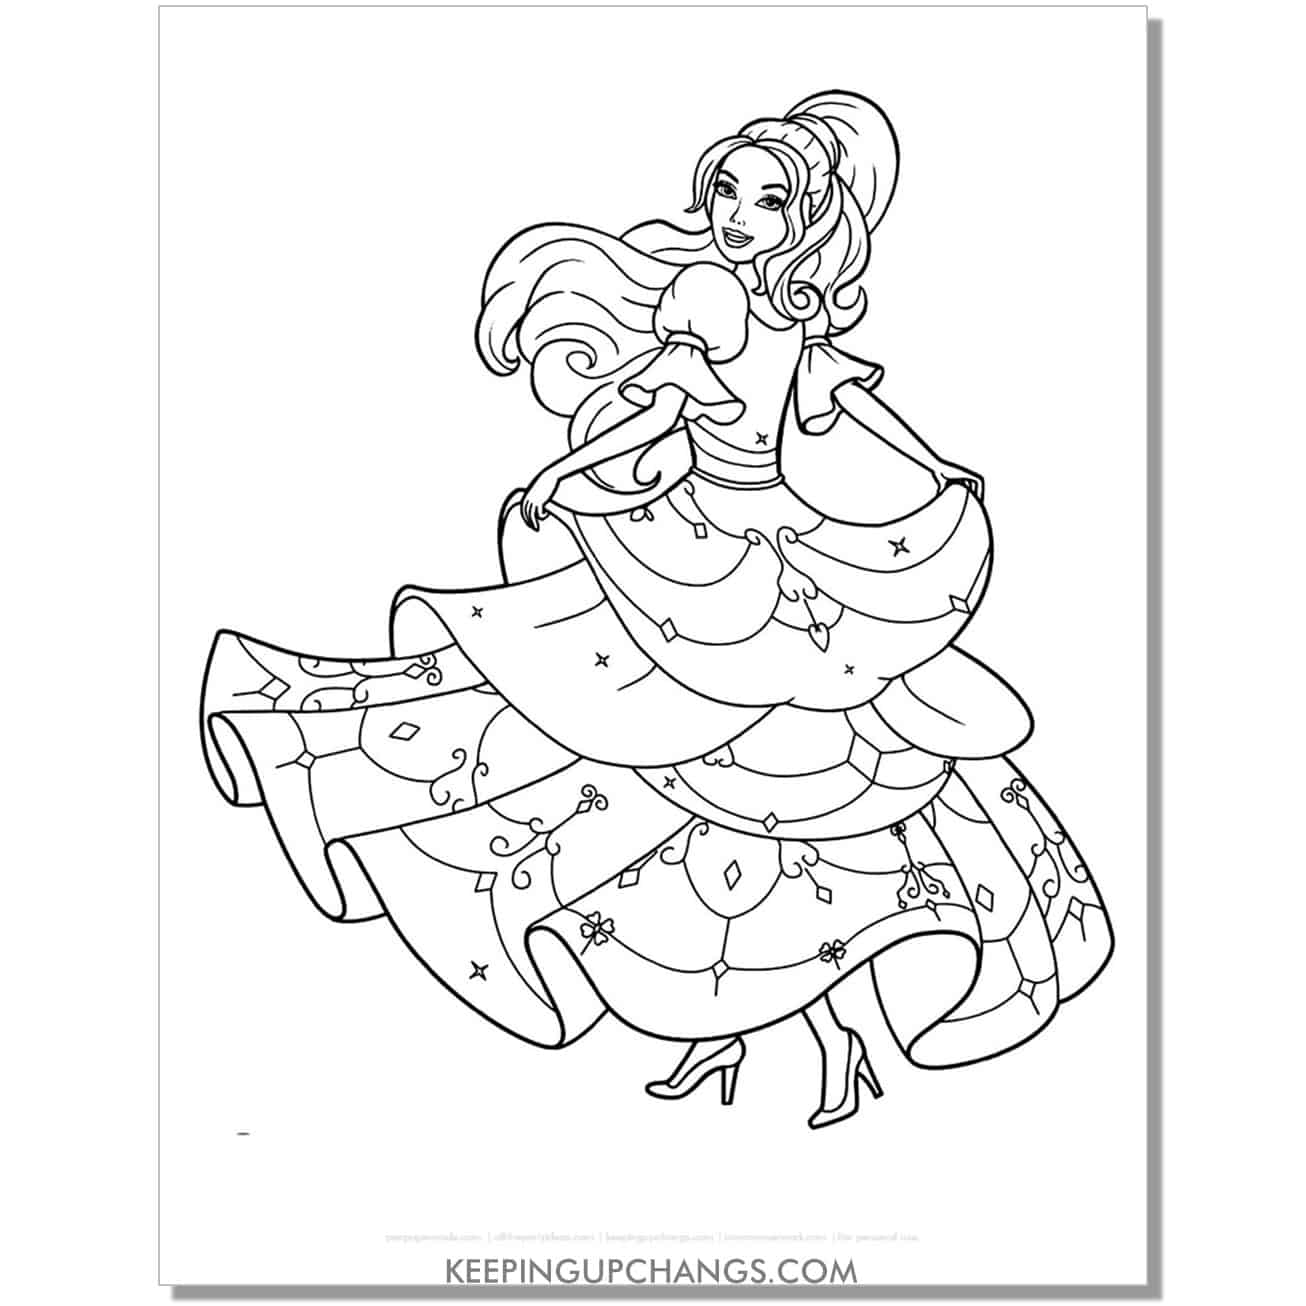 barbie twirling in princess gown coloring page.